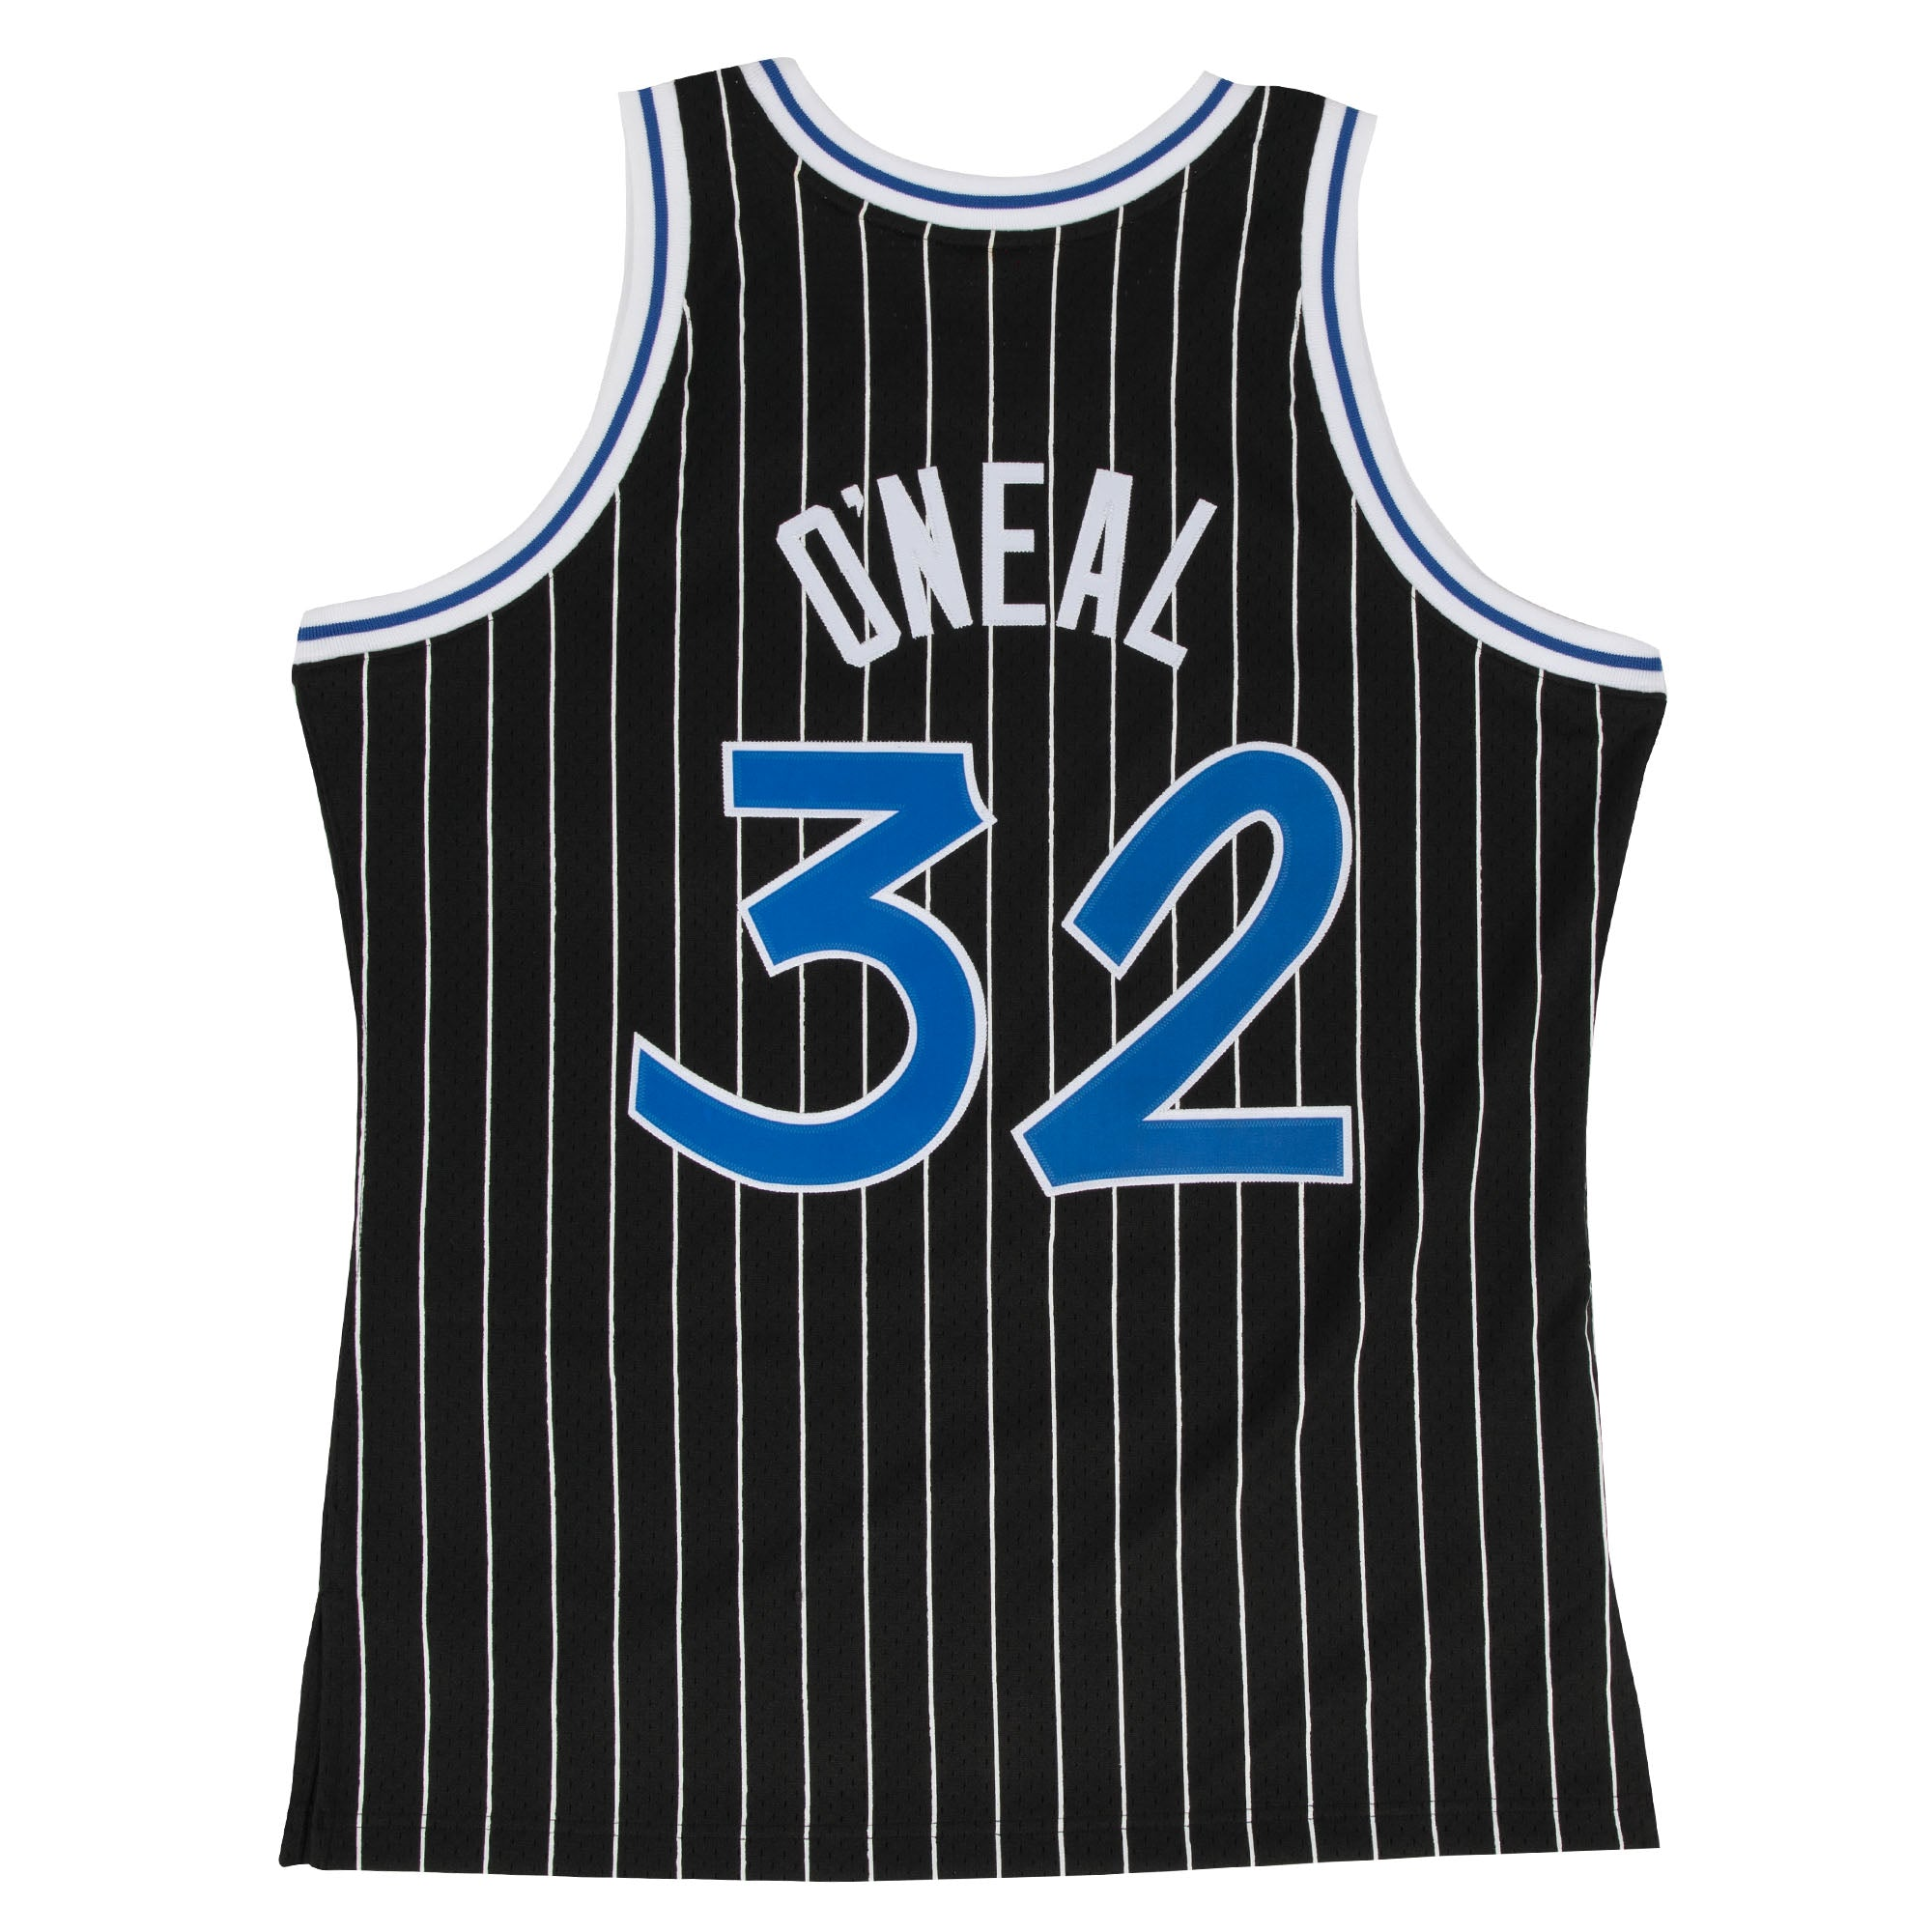 Orlando Magic 94-95 NBA Swingman Jersey - Shaquille O'Neal #32